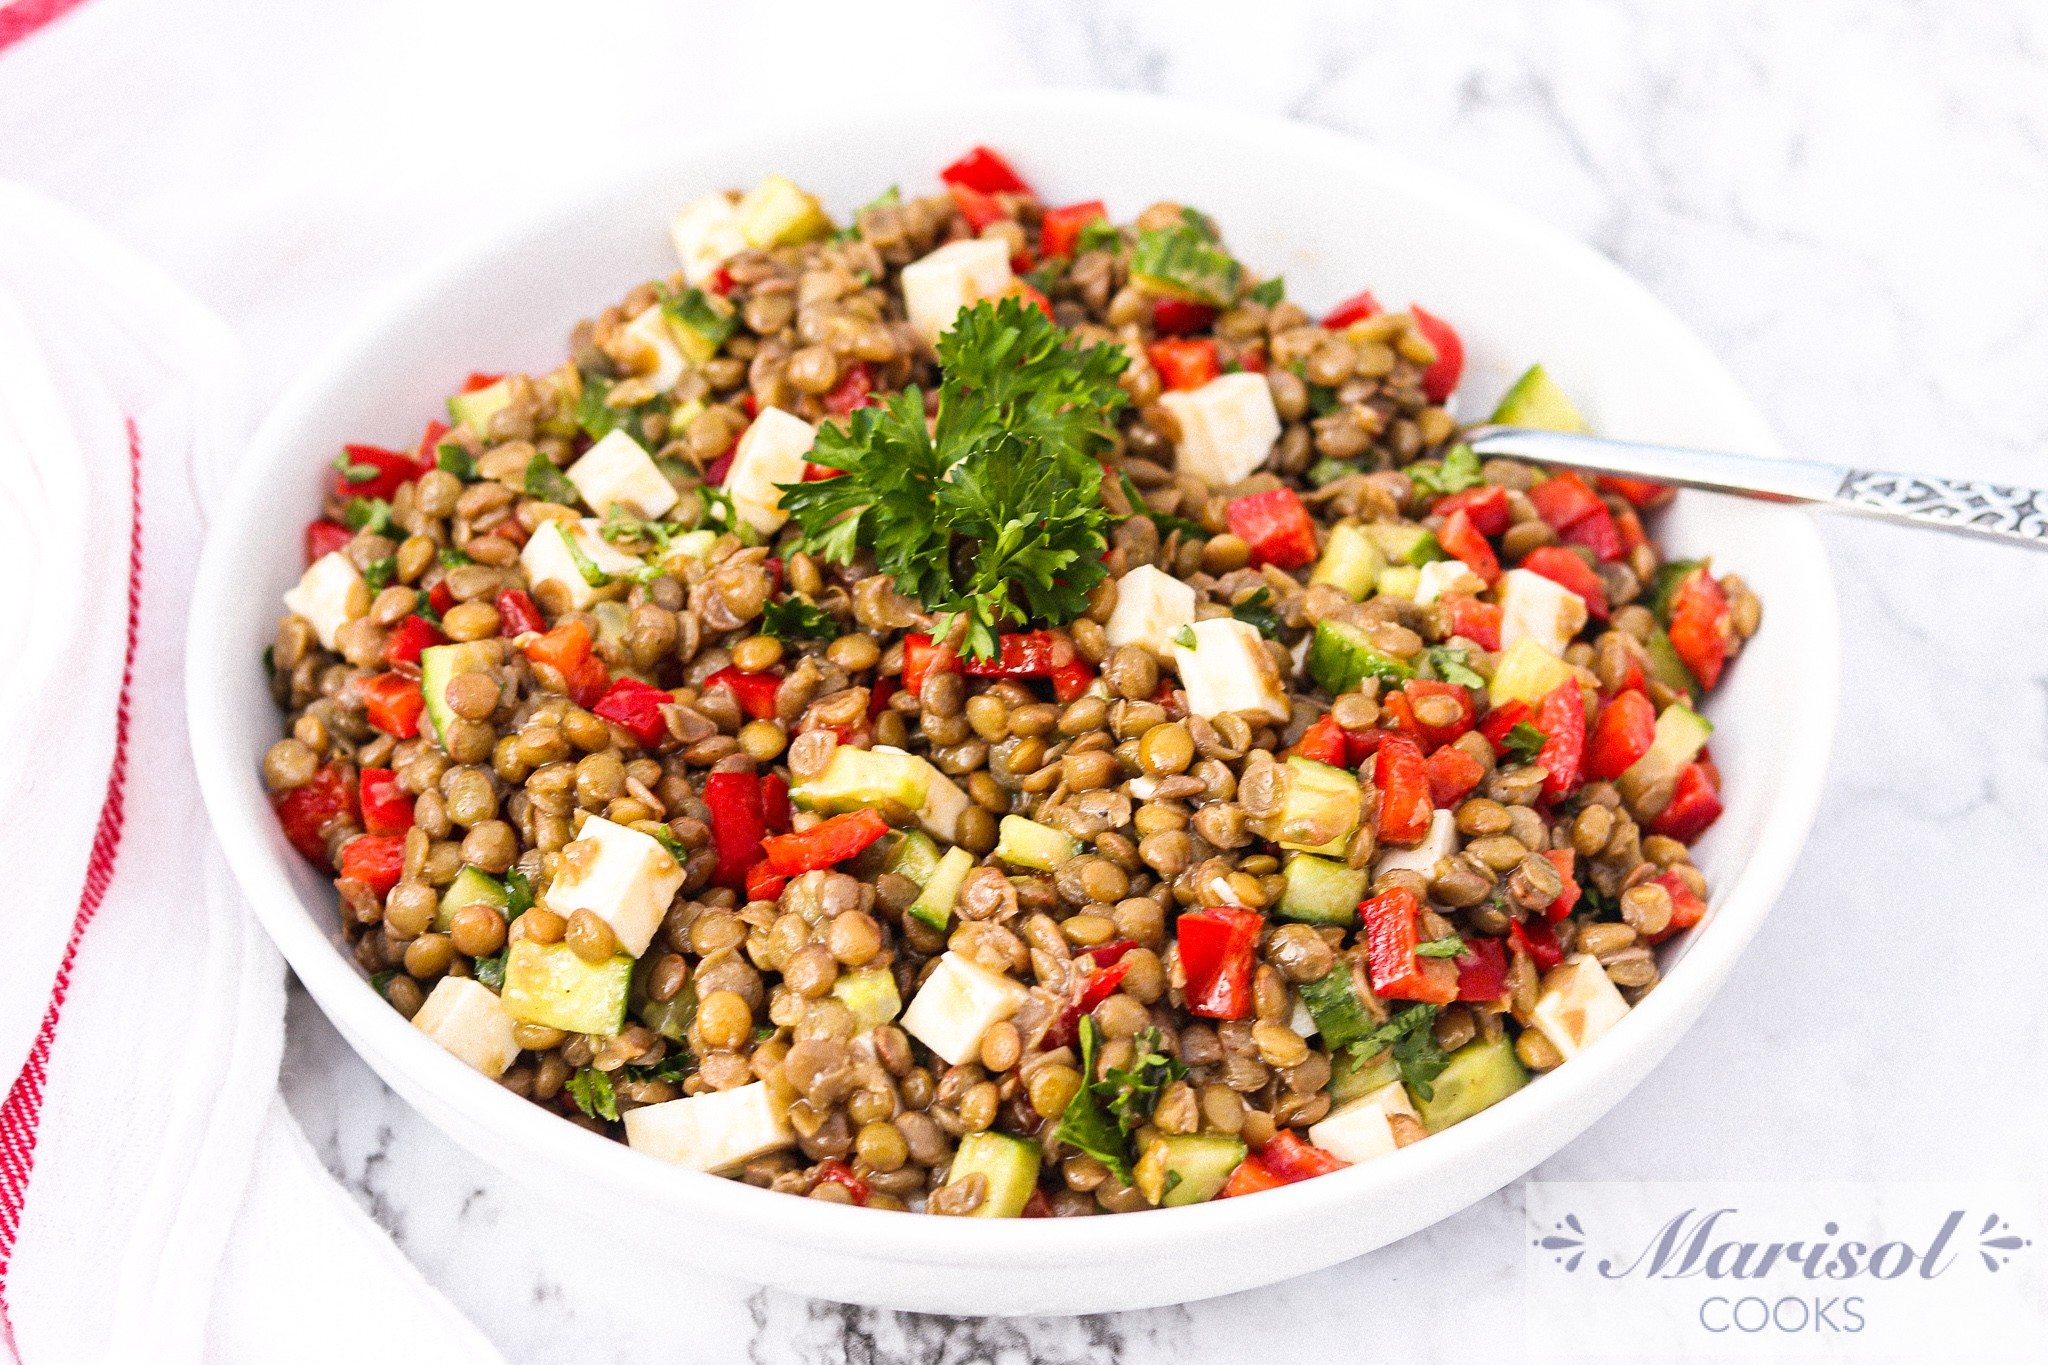 Lentil Salad with Balsamic Vinaigrette